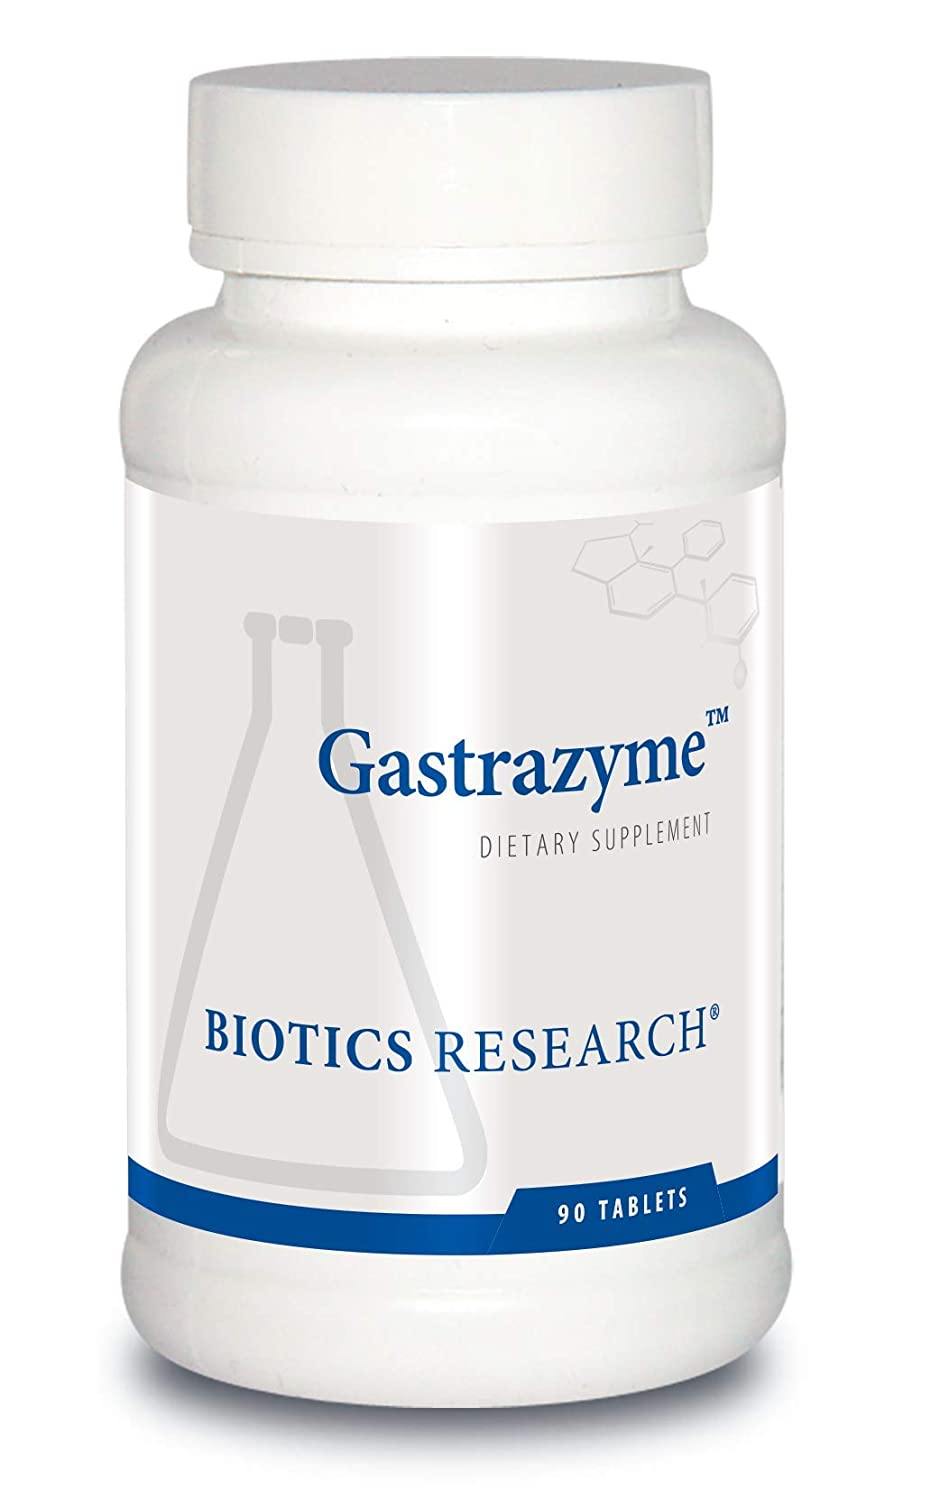 Gastrazyme from Biotics Research, Supplies Vitamin U Complex, Chlorophyllins, Gamma Oryzanol and More.